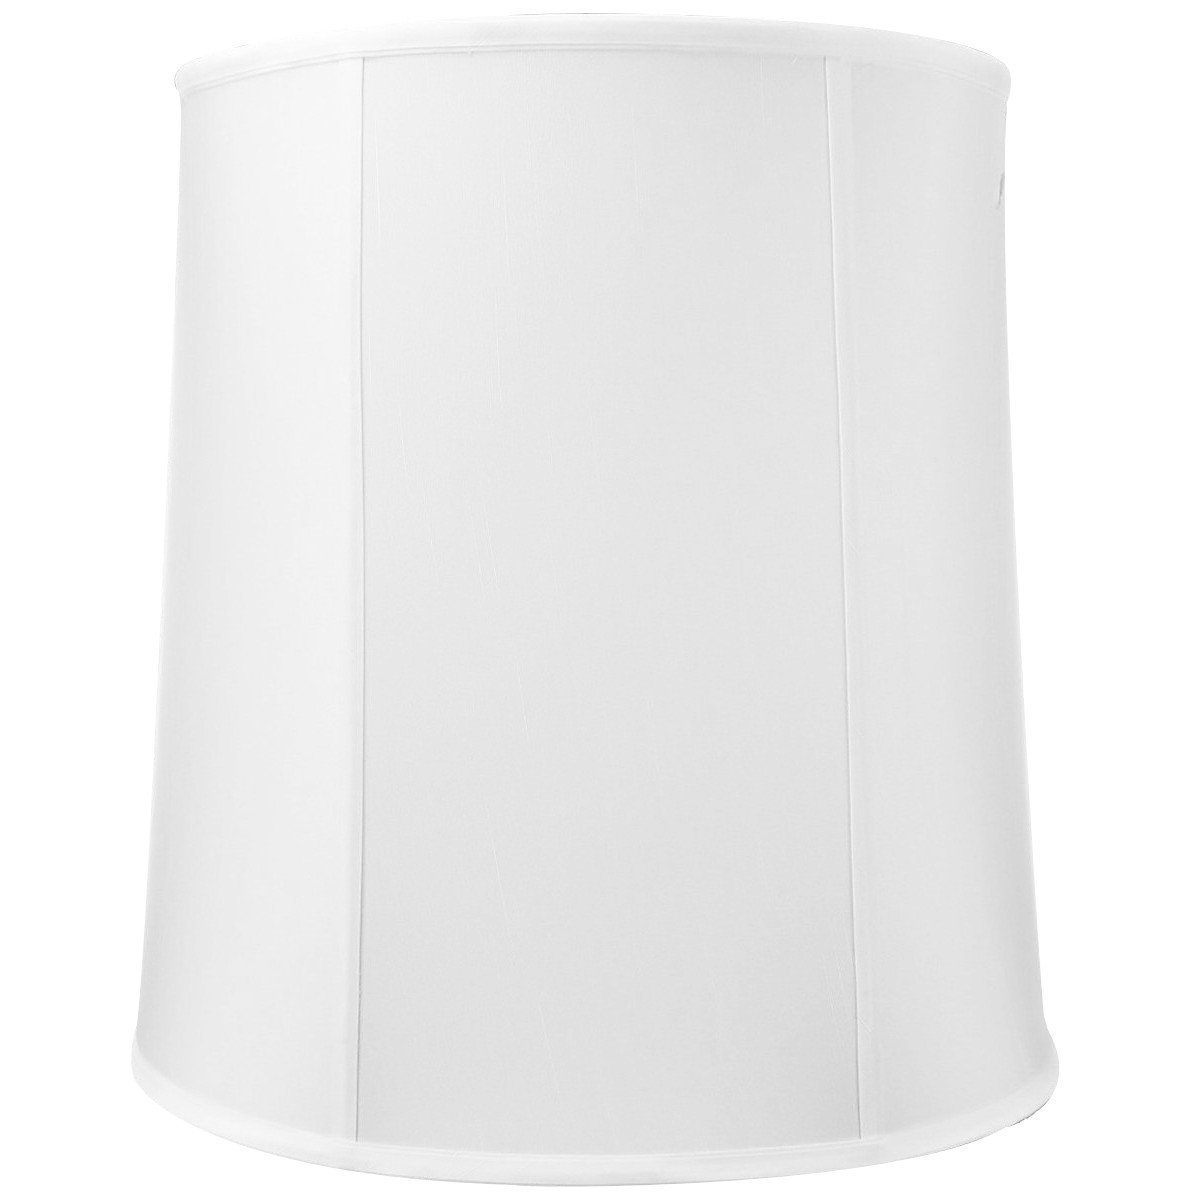 14x16x17 White Drum Shantung Lampshade with Brass Spider Fitter - Perfect for Table and Desk Lamps - Large, White